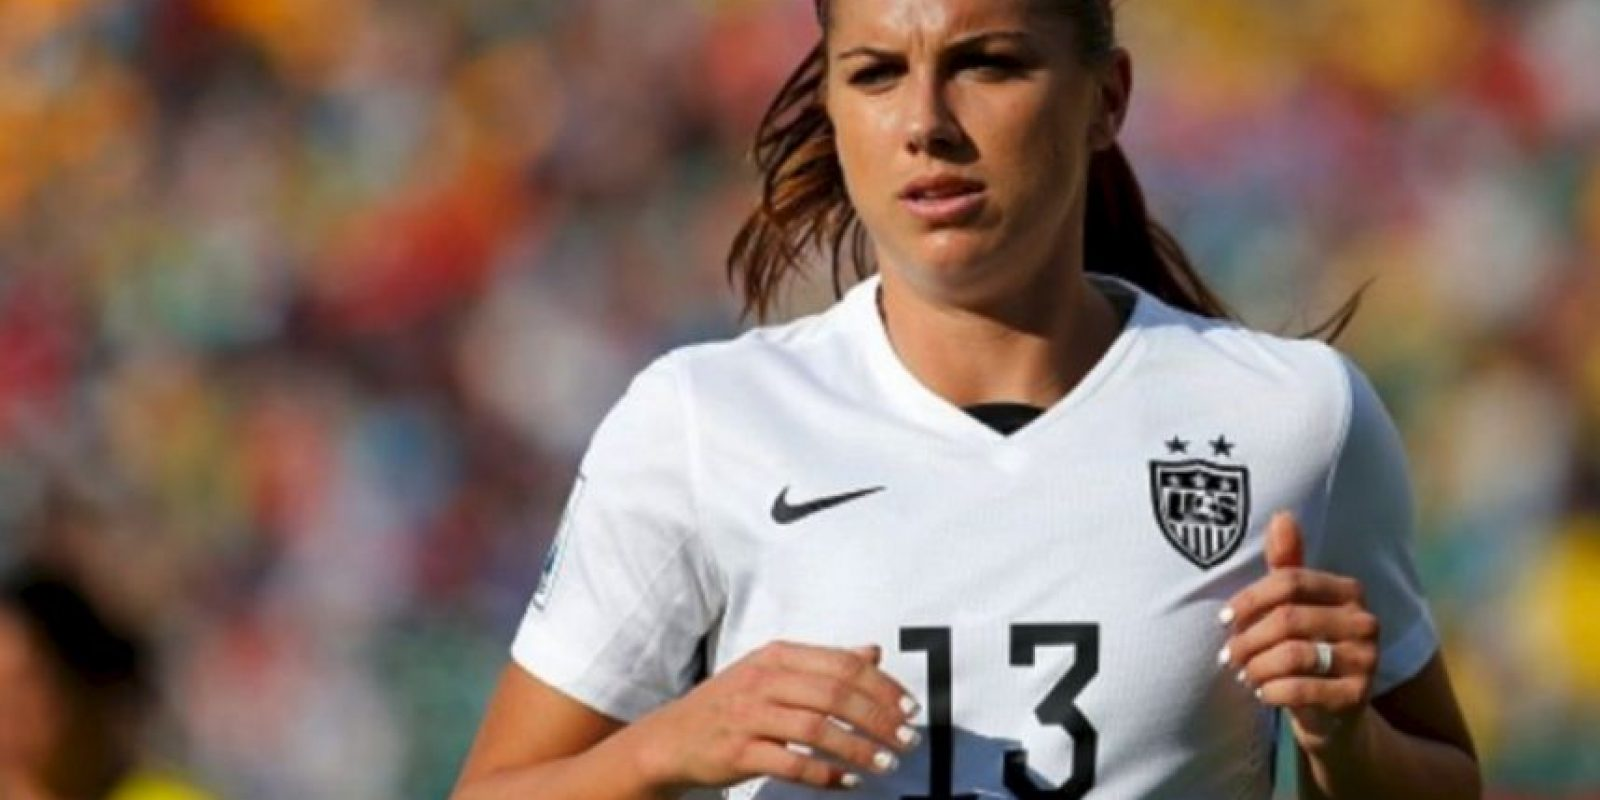 La estadounidense Alex Morgan juega en el Portland Thorns FC Foto: Getty Images